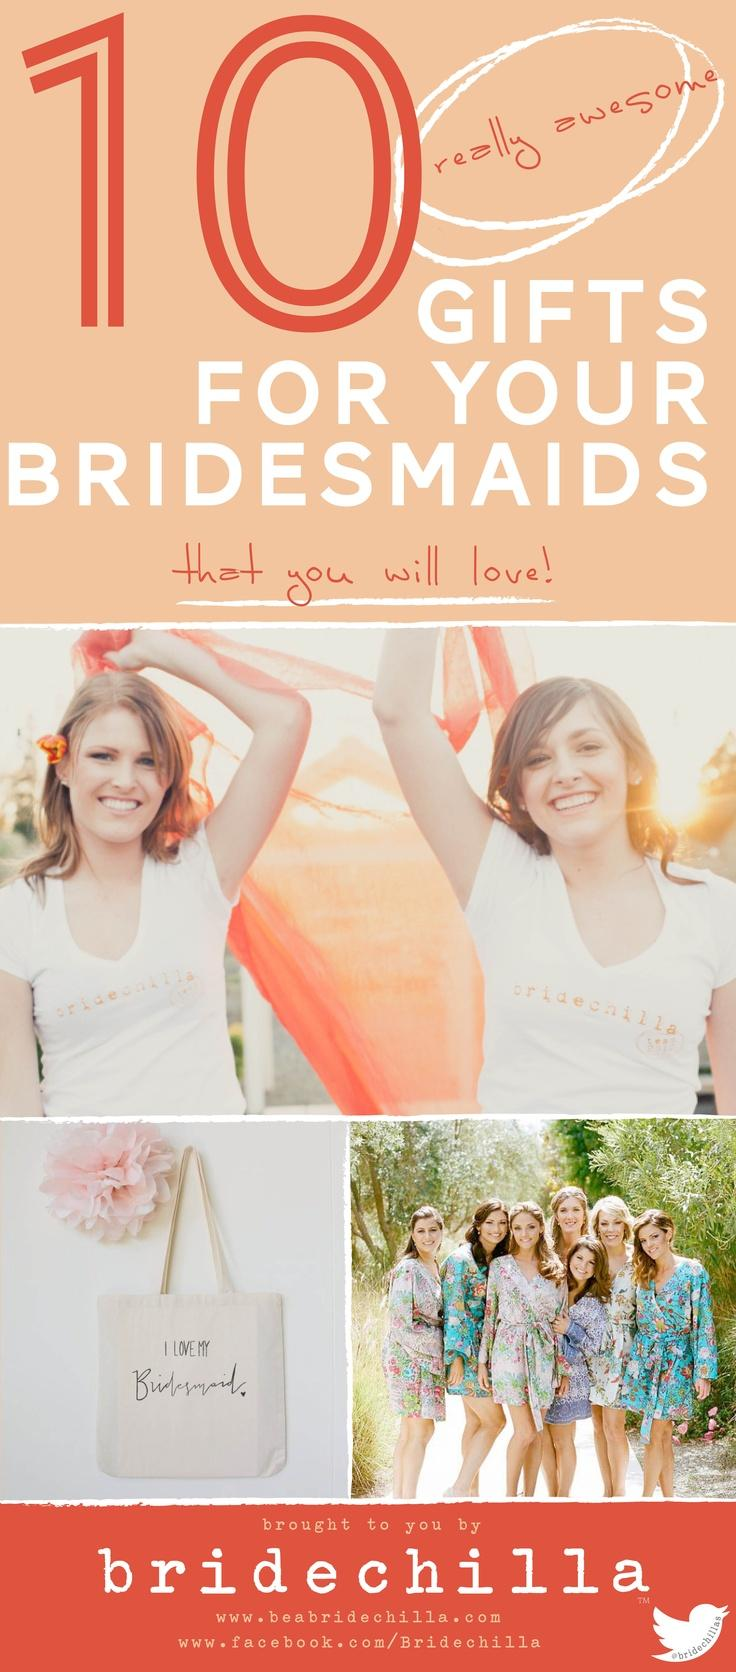 Wedding - Click The Image To Find Gift Ideas For Your Bridesmaids! From T-shirts To Totes And Robes, We've Got All Our Favorites!